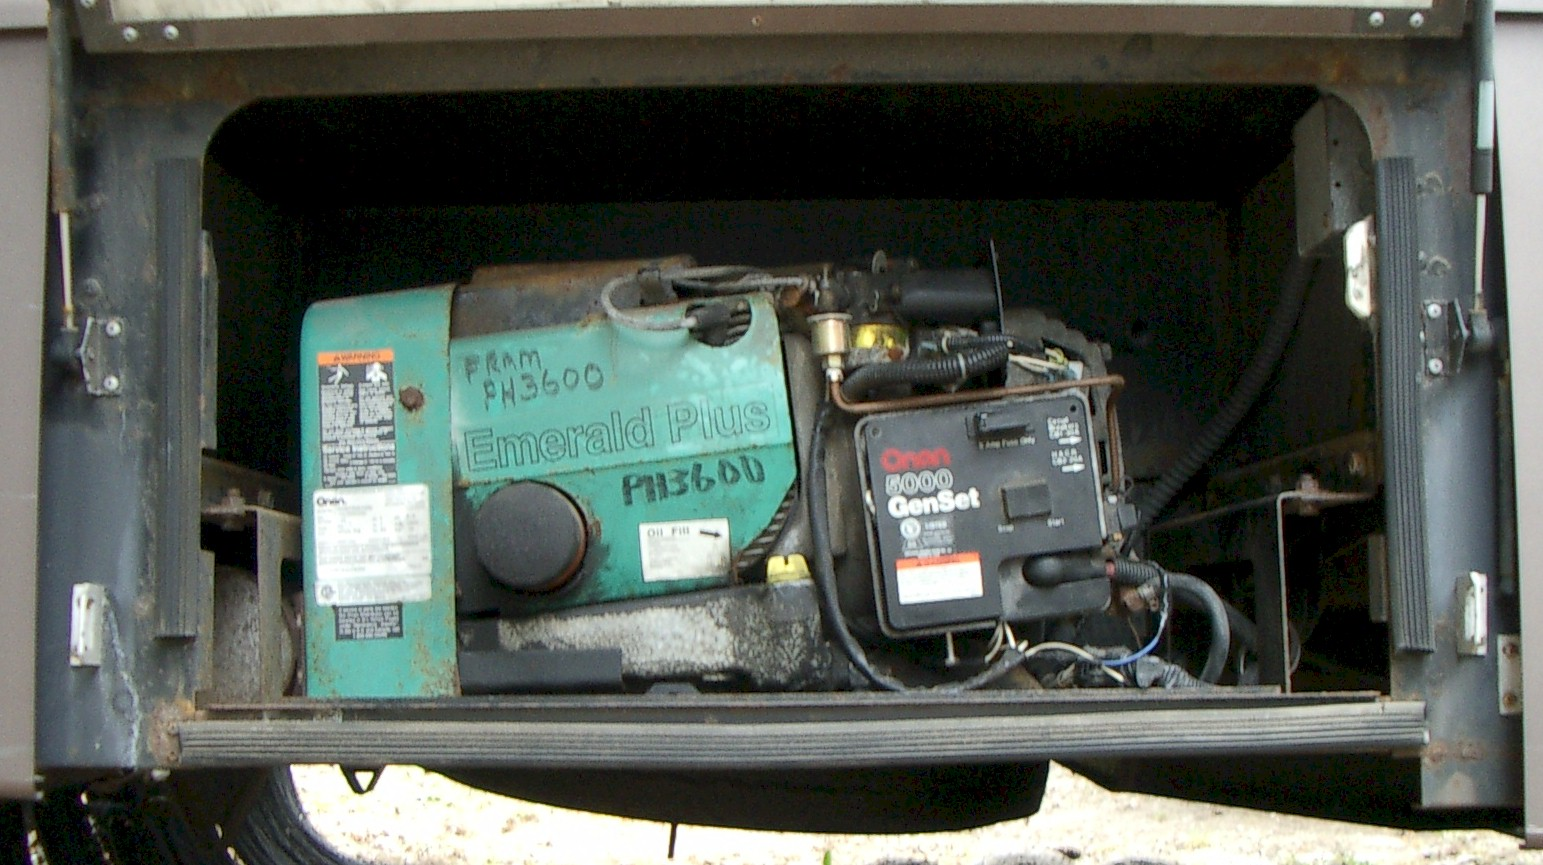 winnebago generator wiring diagram winnebago image winnebago fuel gauge wiring diagram winnebago auto wiring on winnebago generator wiring diagram